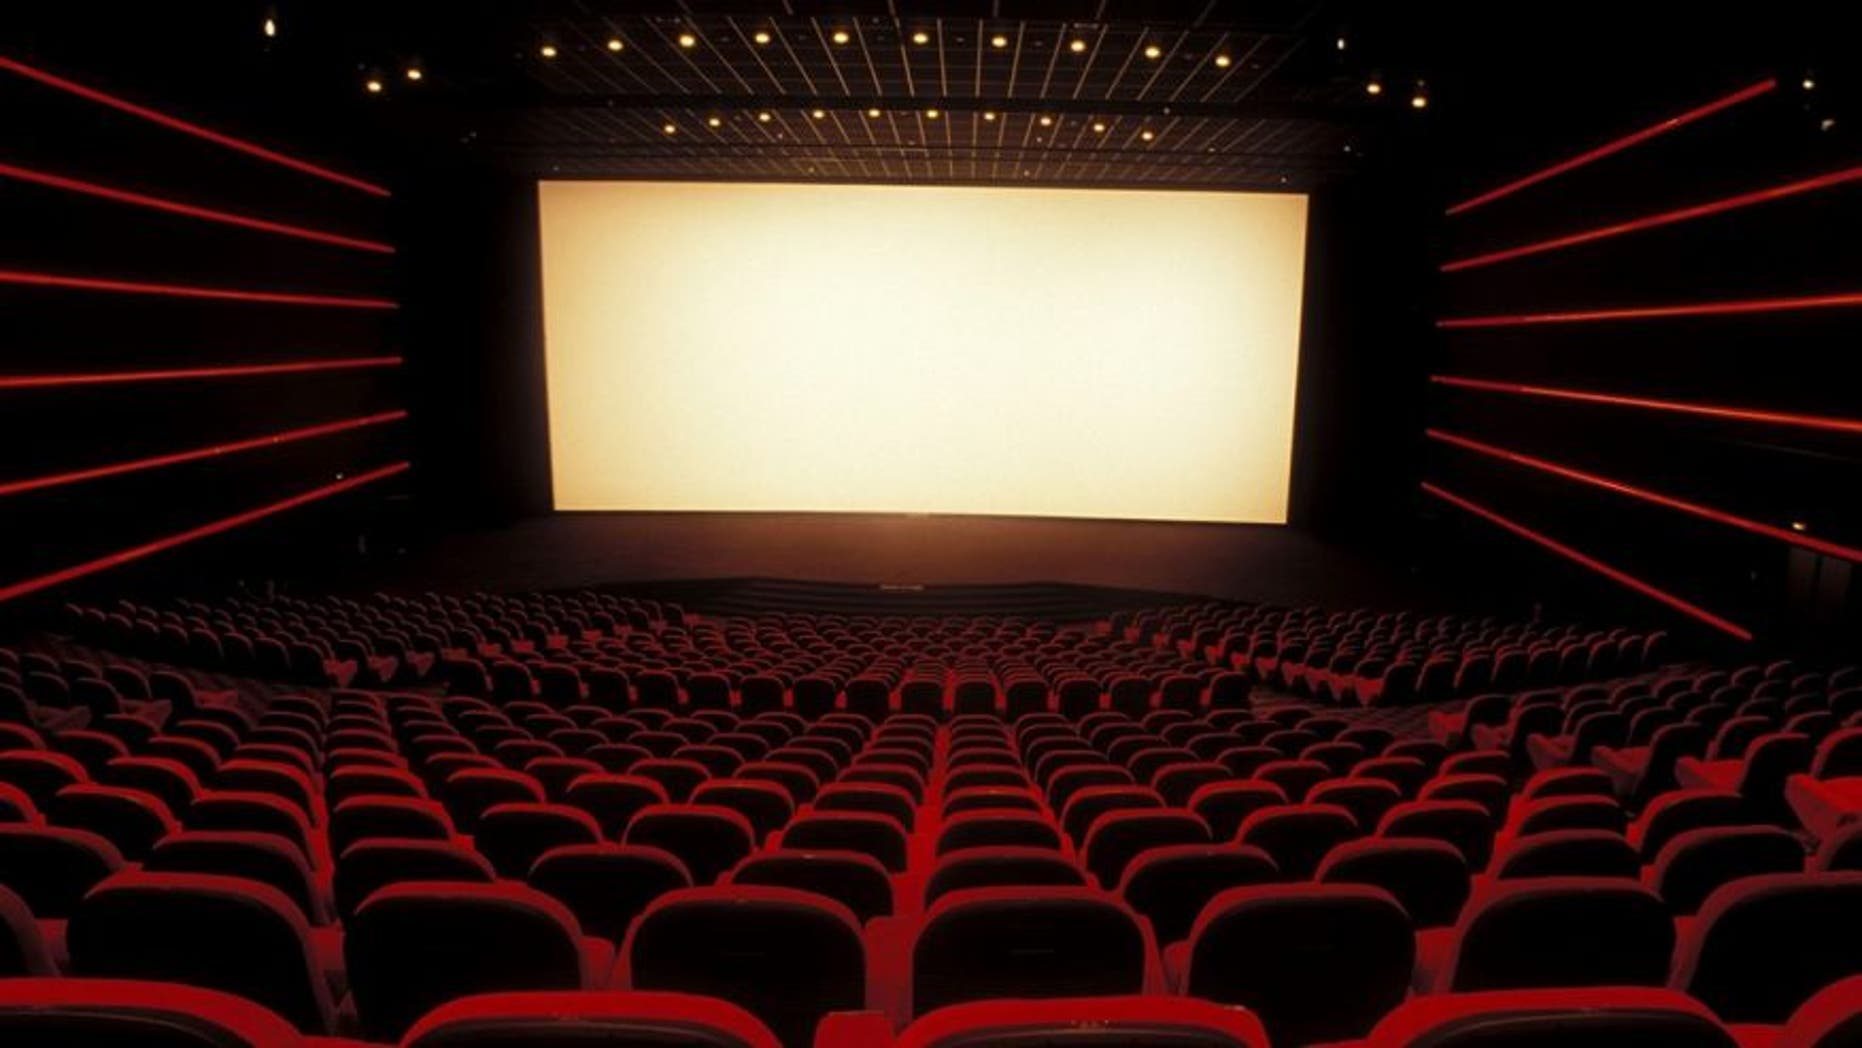 """Some deaf and hearing-impaired moviegoers say a Rhode Island theater refused to switch on the captioning so they could follow along with Disney's """"Beauty and the Beast."""""""